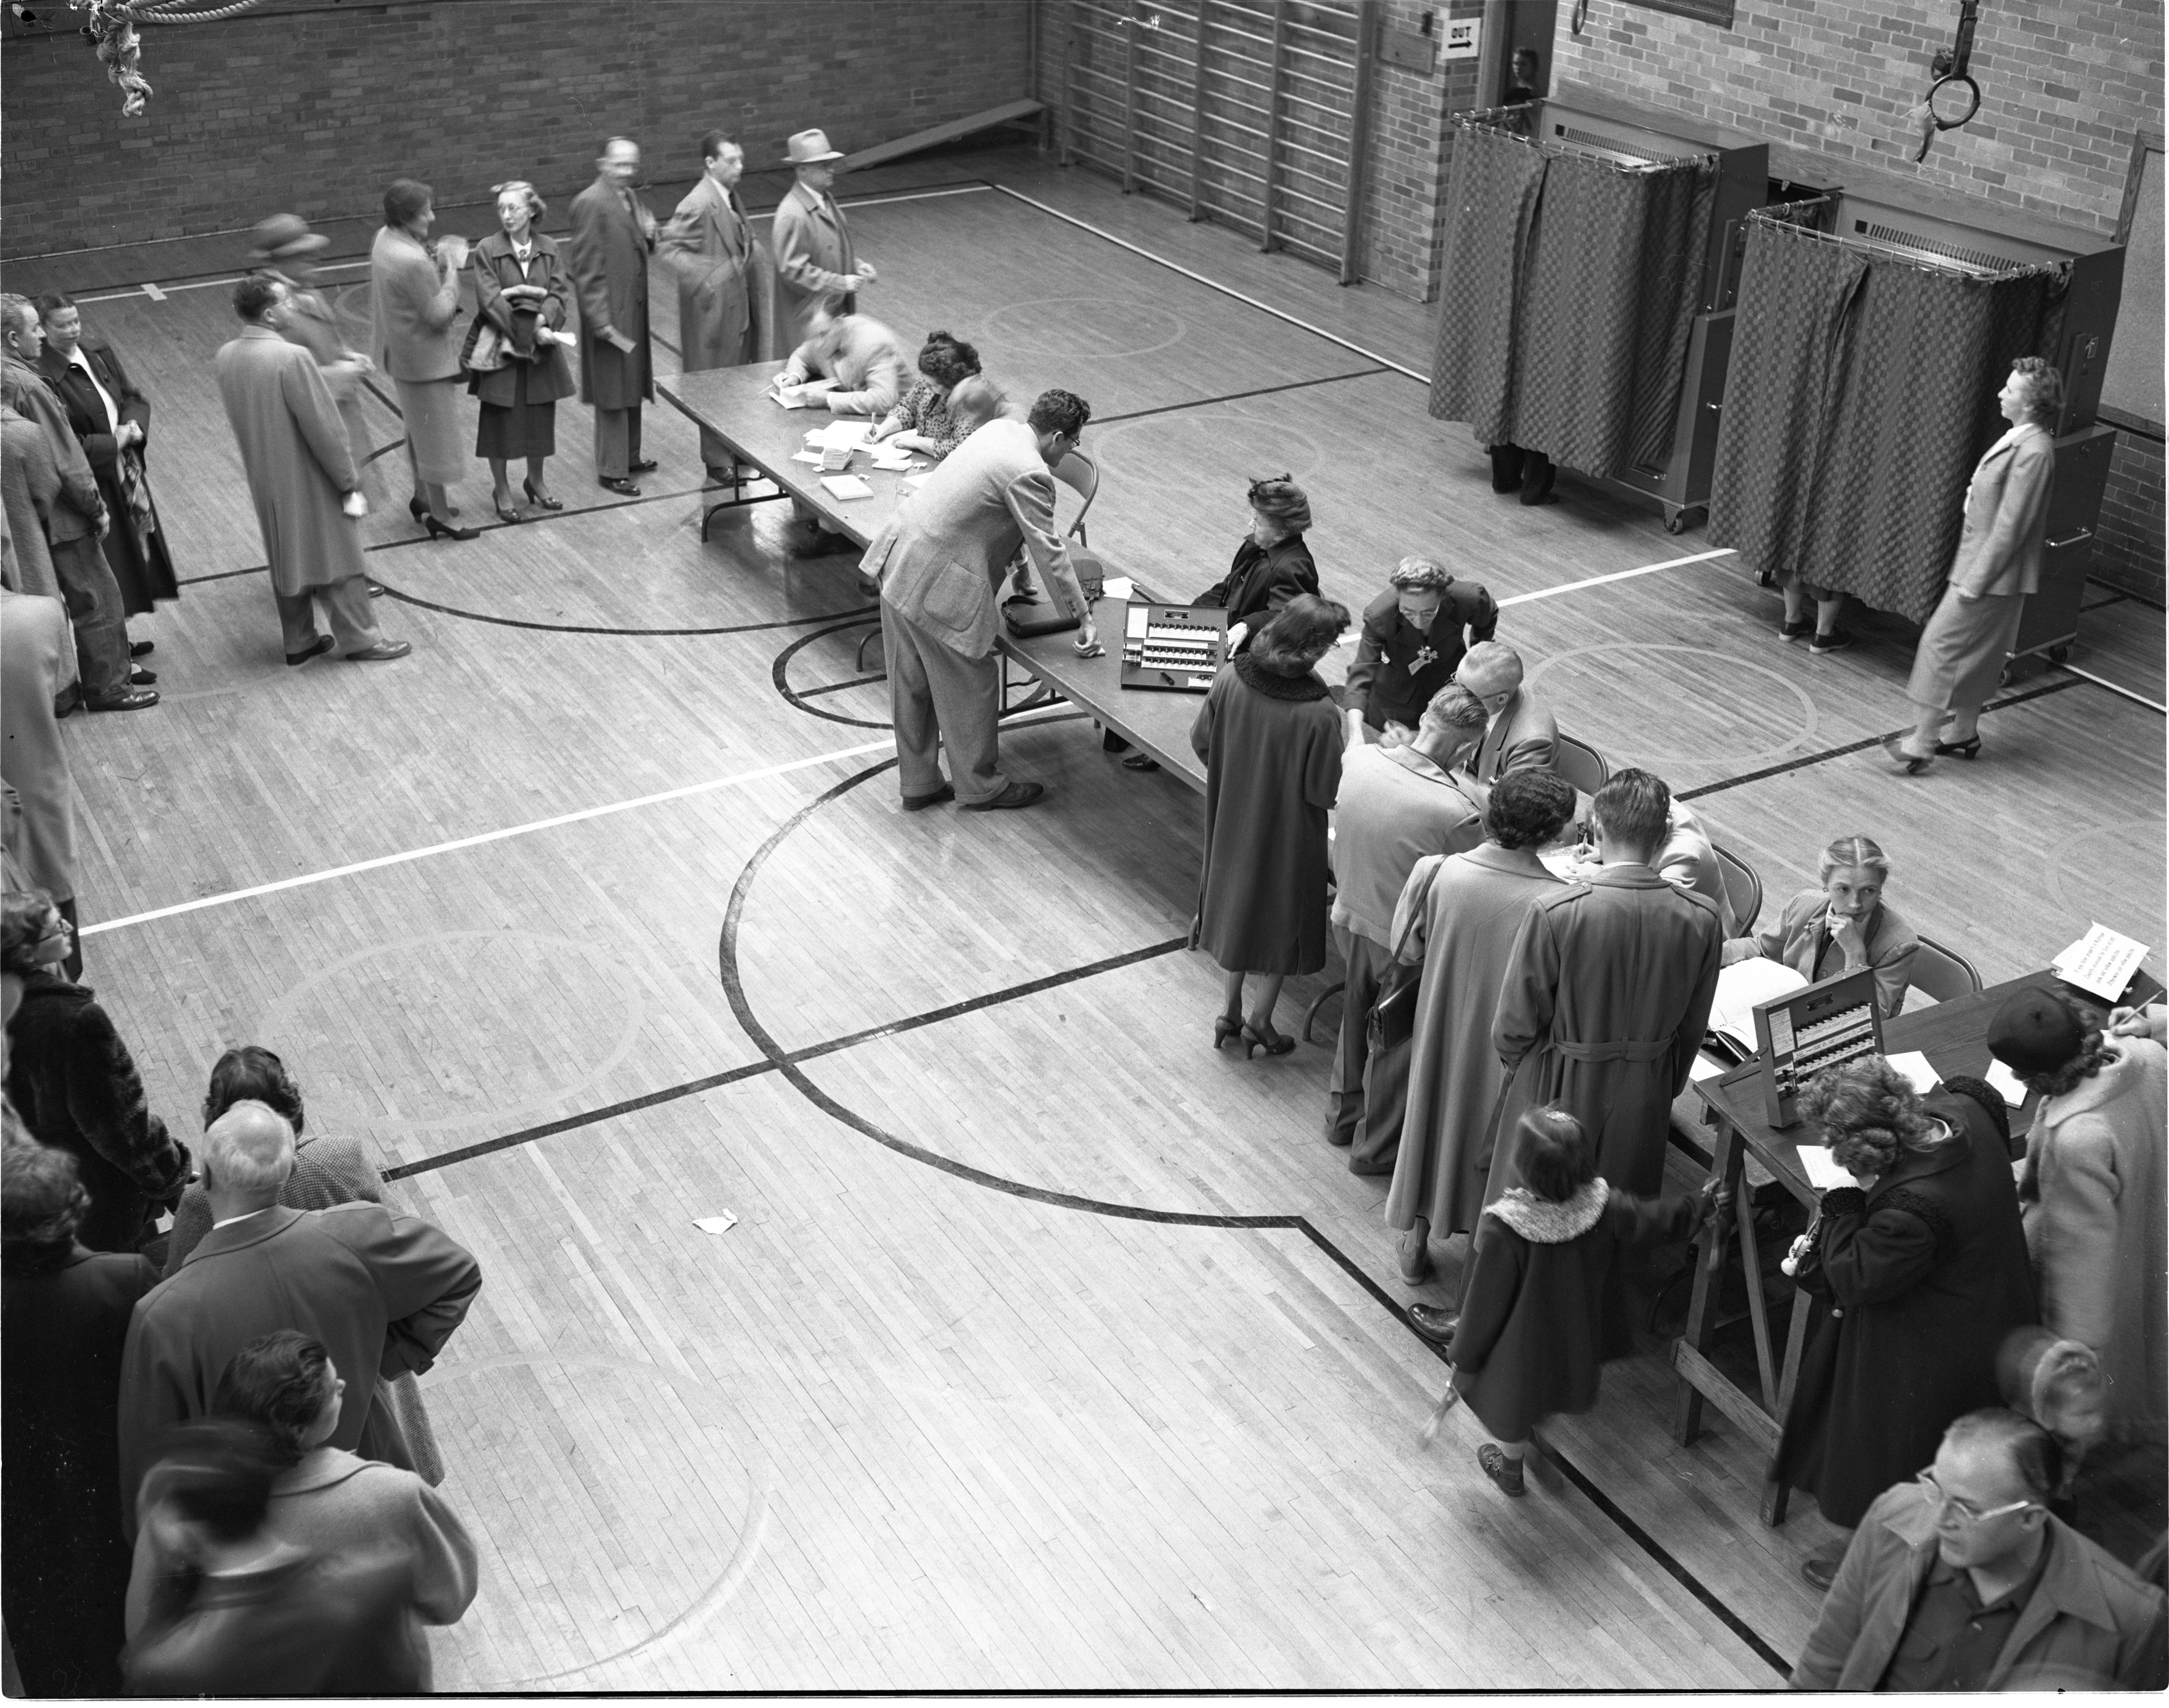 Ann Arbor Voters Wait To Cast Their Ballots For The 1952 Presidential Election - November 4, 1952 image